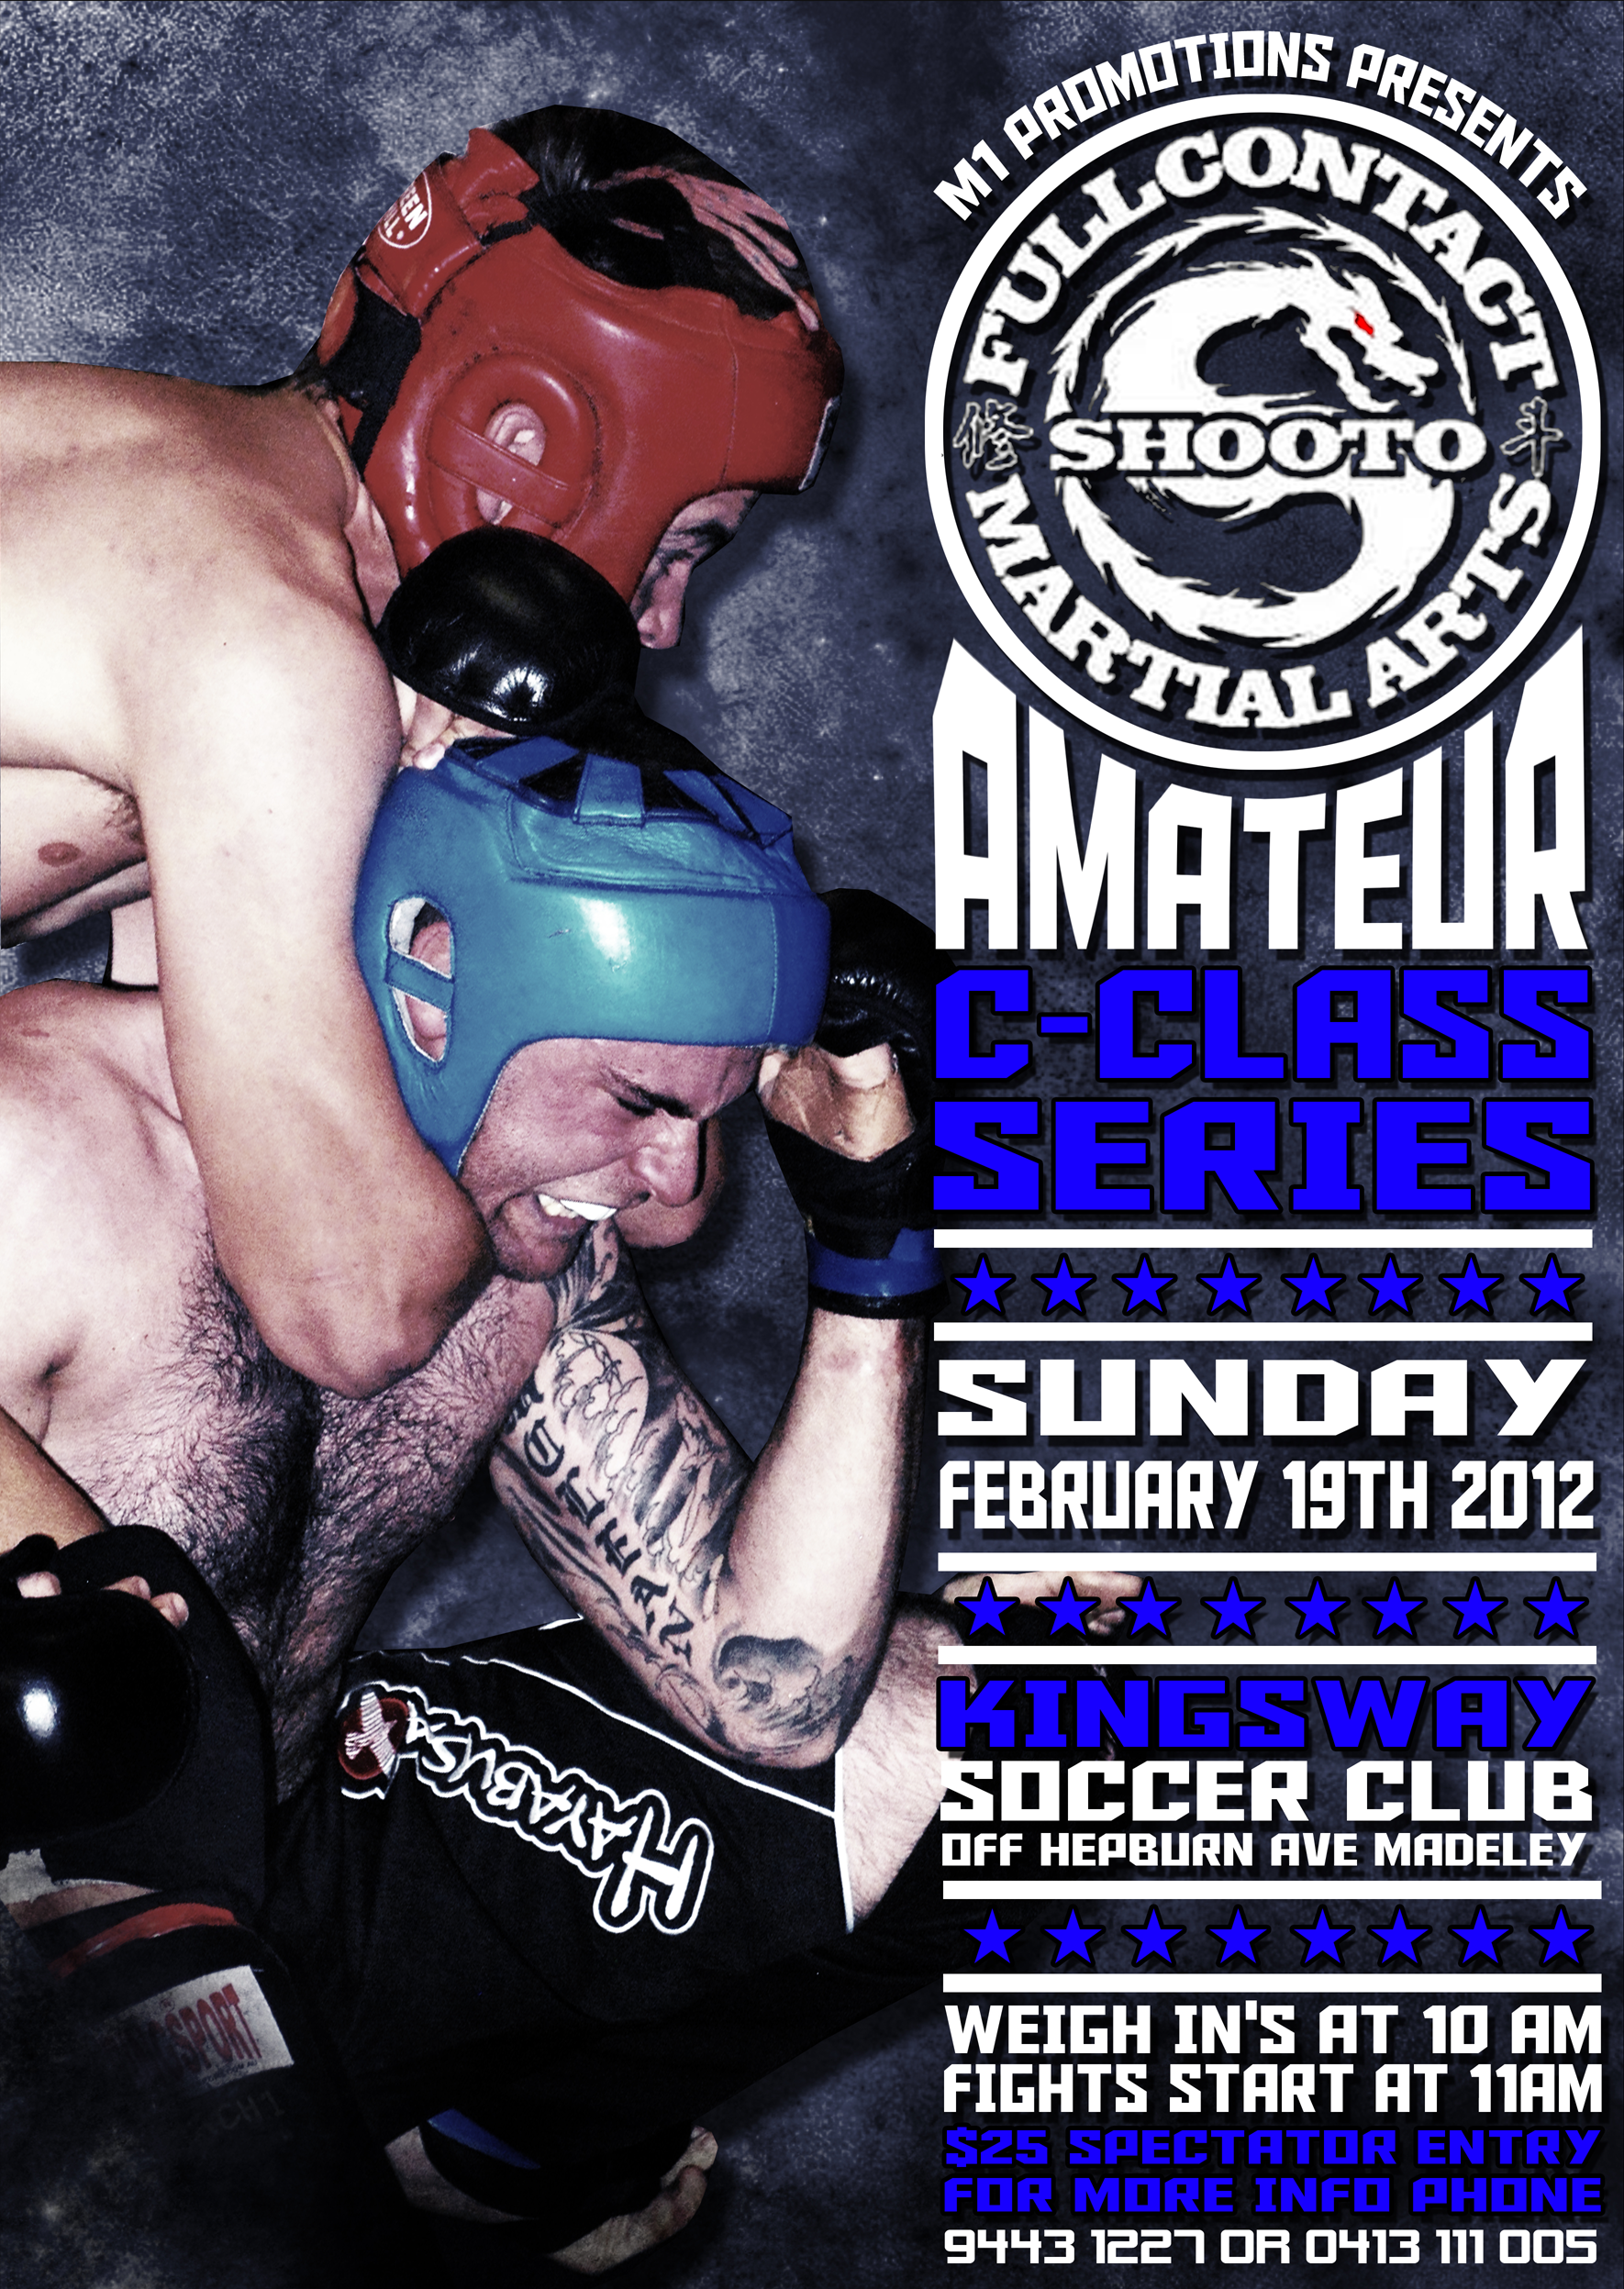 C-Class Shooto amateur MMA event on Sunday February 19th 2012 starting at 11am